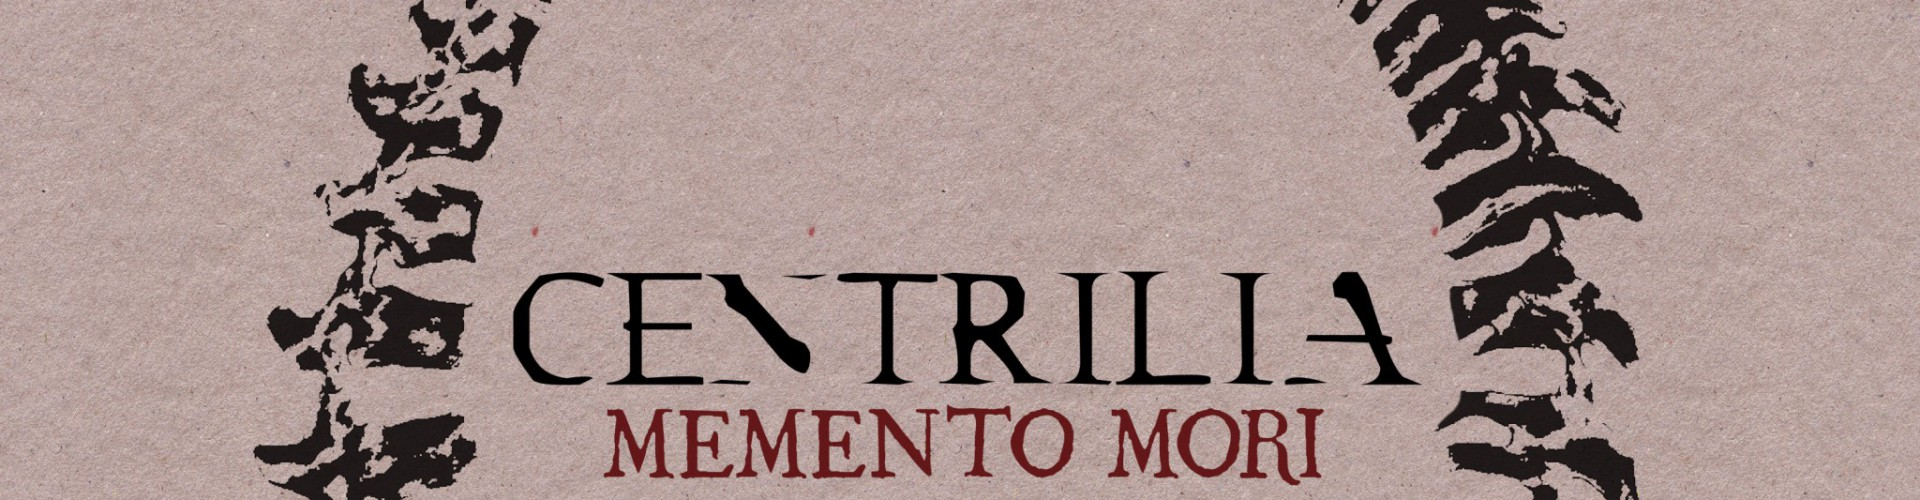 Memento Mori – The second E.P. from Centrilia